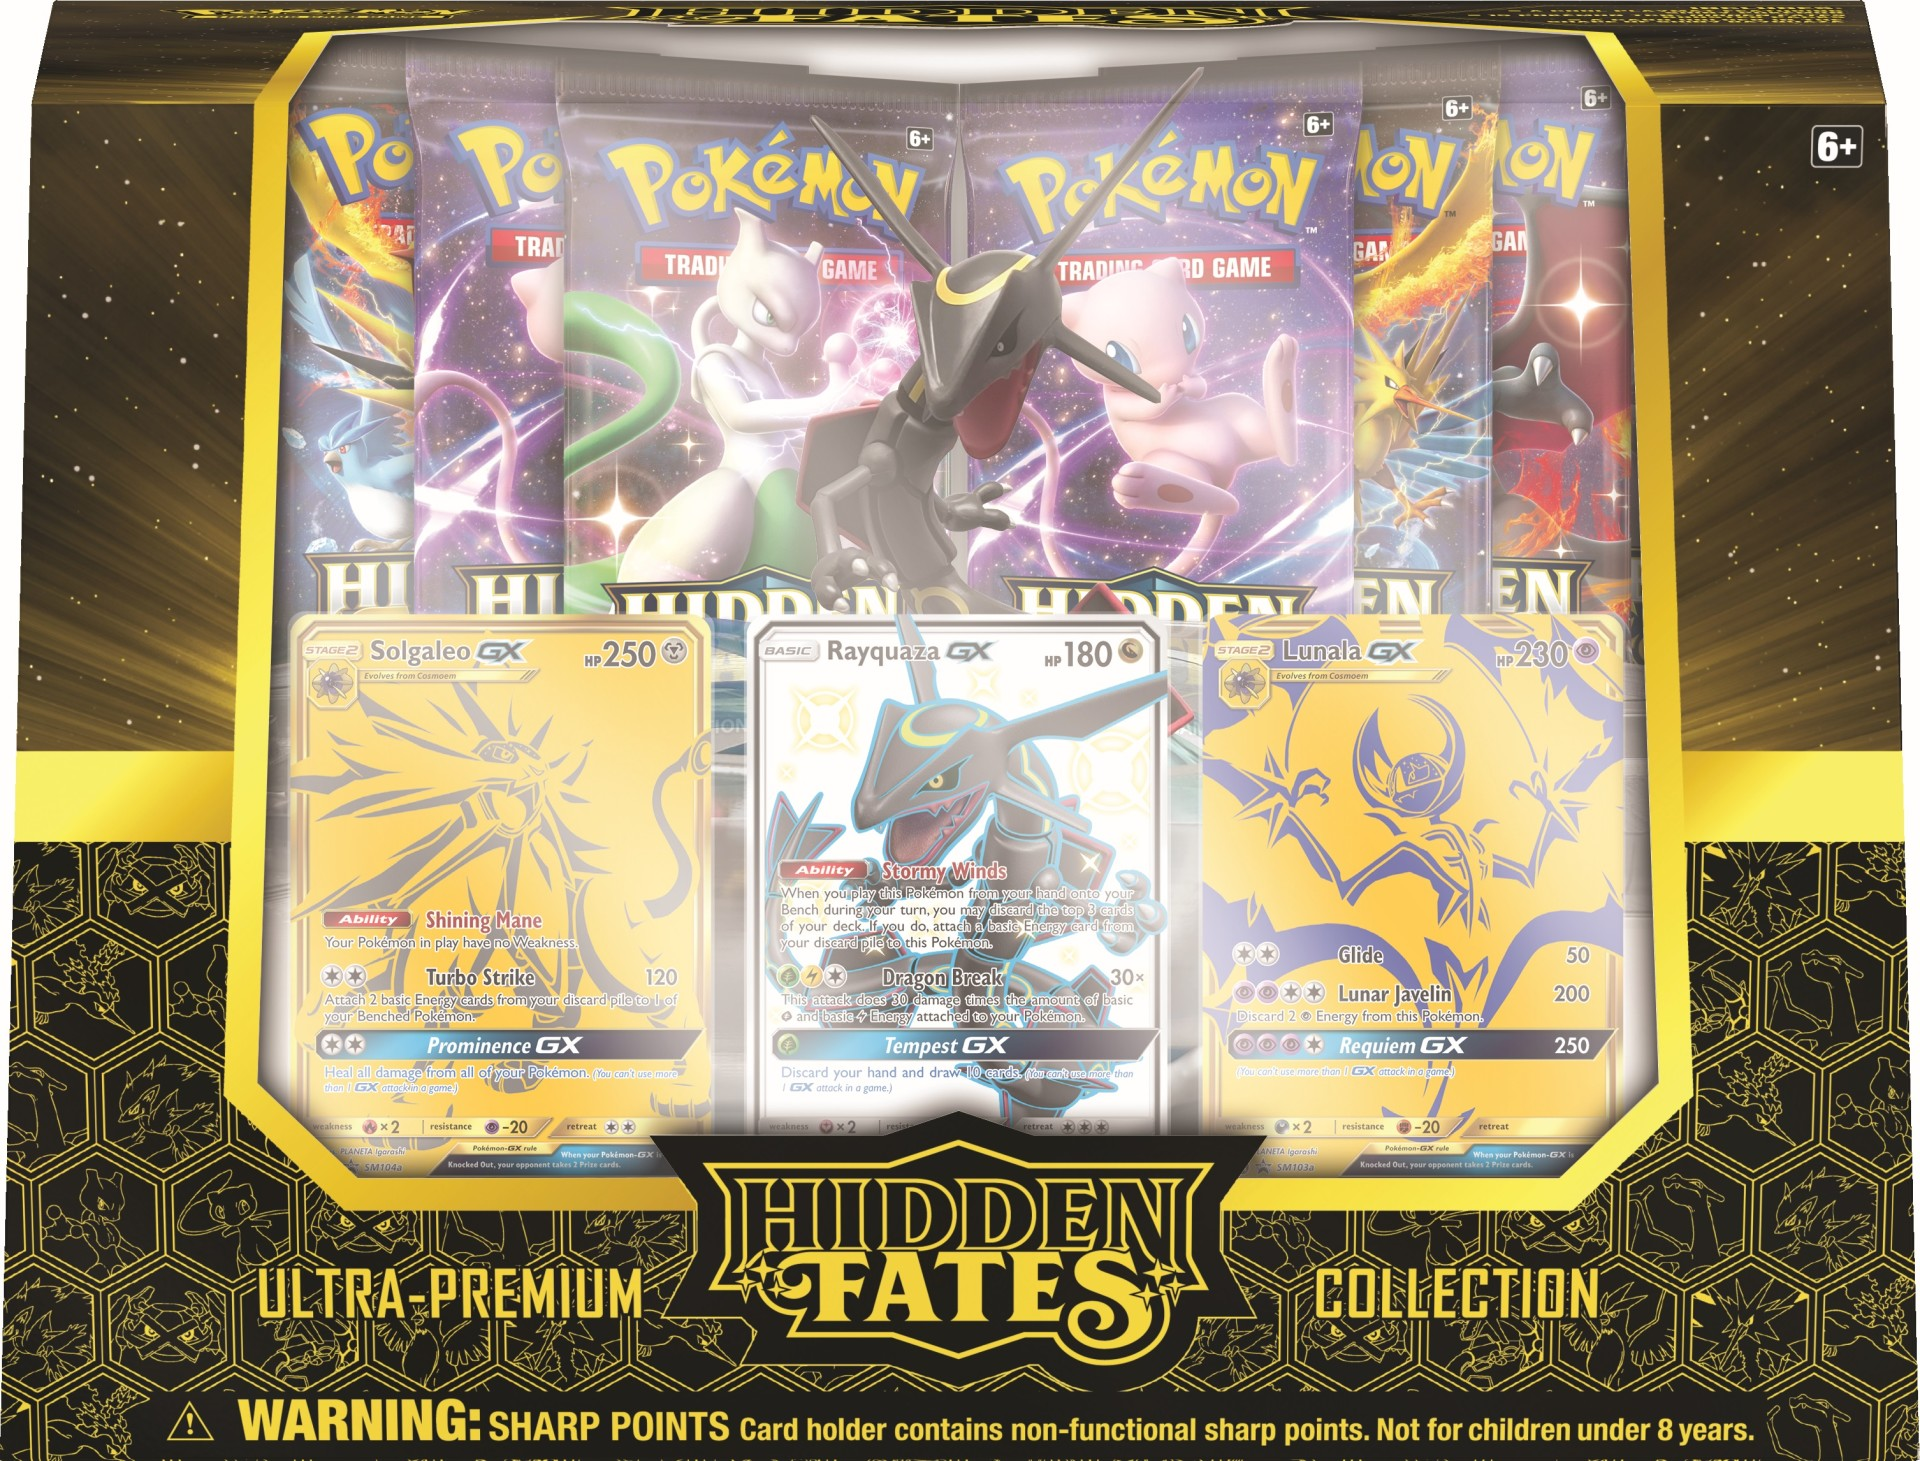 Hidden Fates Ultra Premium Collection Revealed